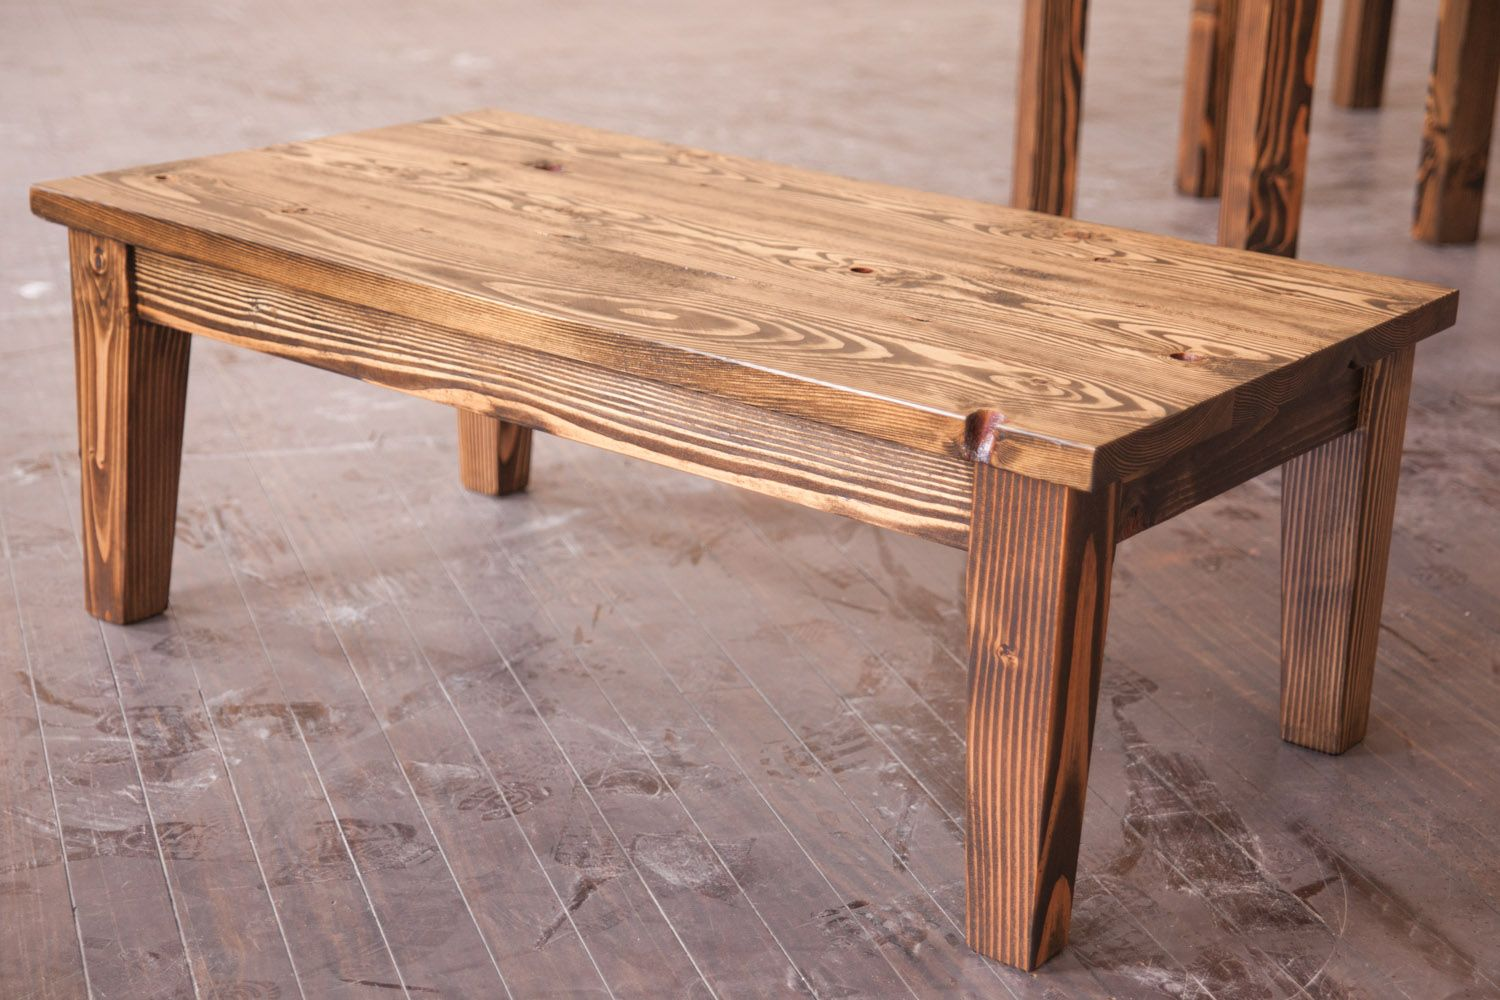 4u0027 Farmhouse Coffee Table With Tapered Legs. Stained Dark Walnut Distressed  Top. For